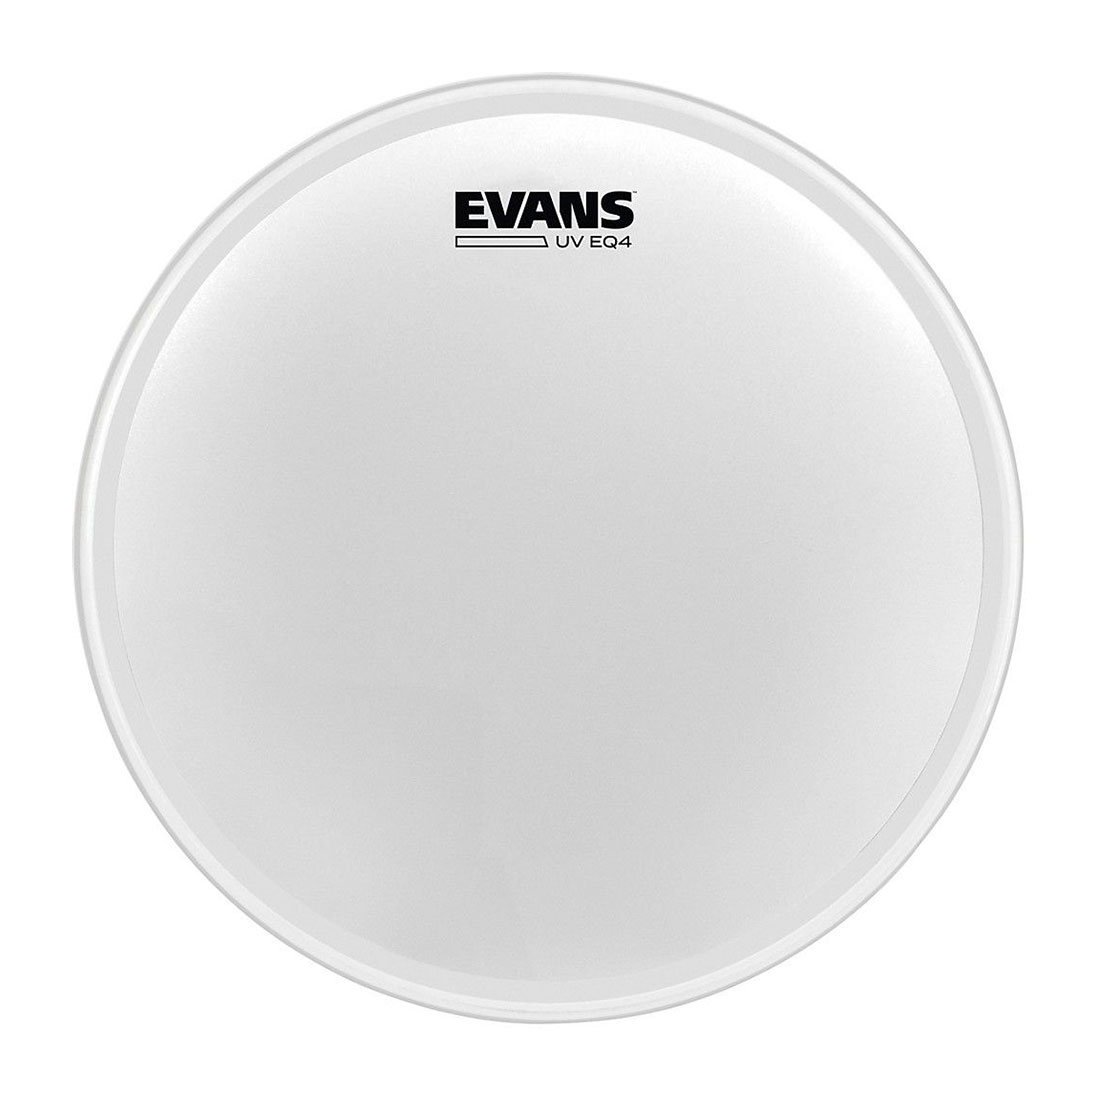 "Evans 20"" UV EQ4 Coated Bass Drum Head"